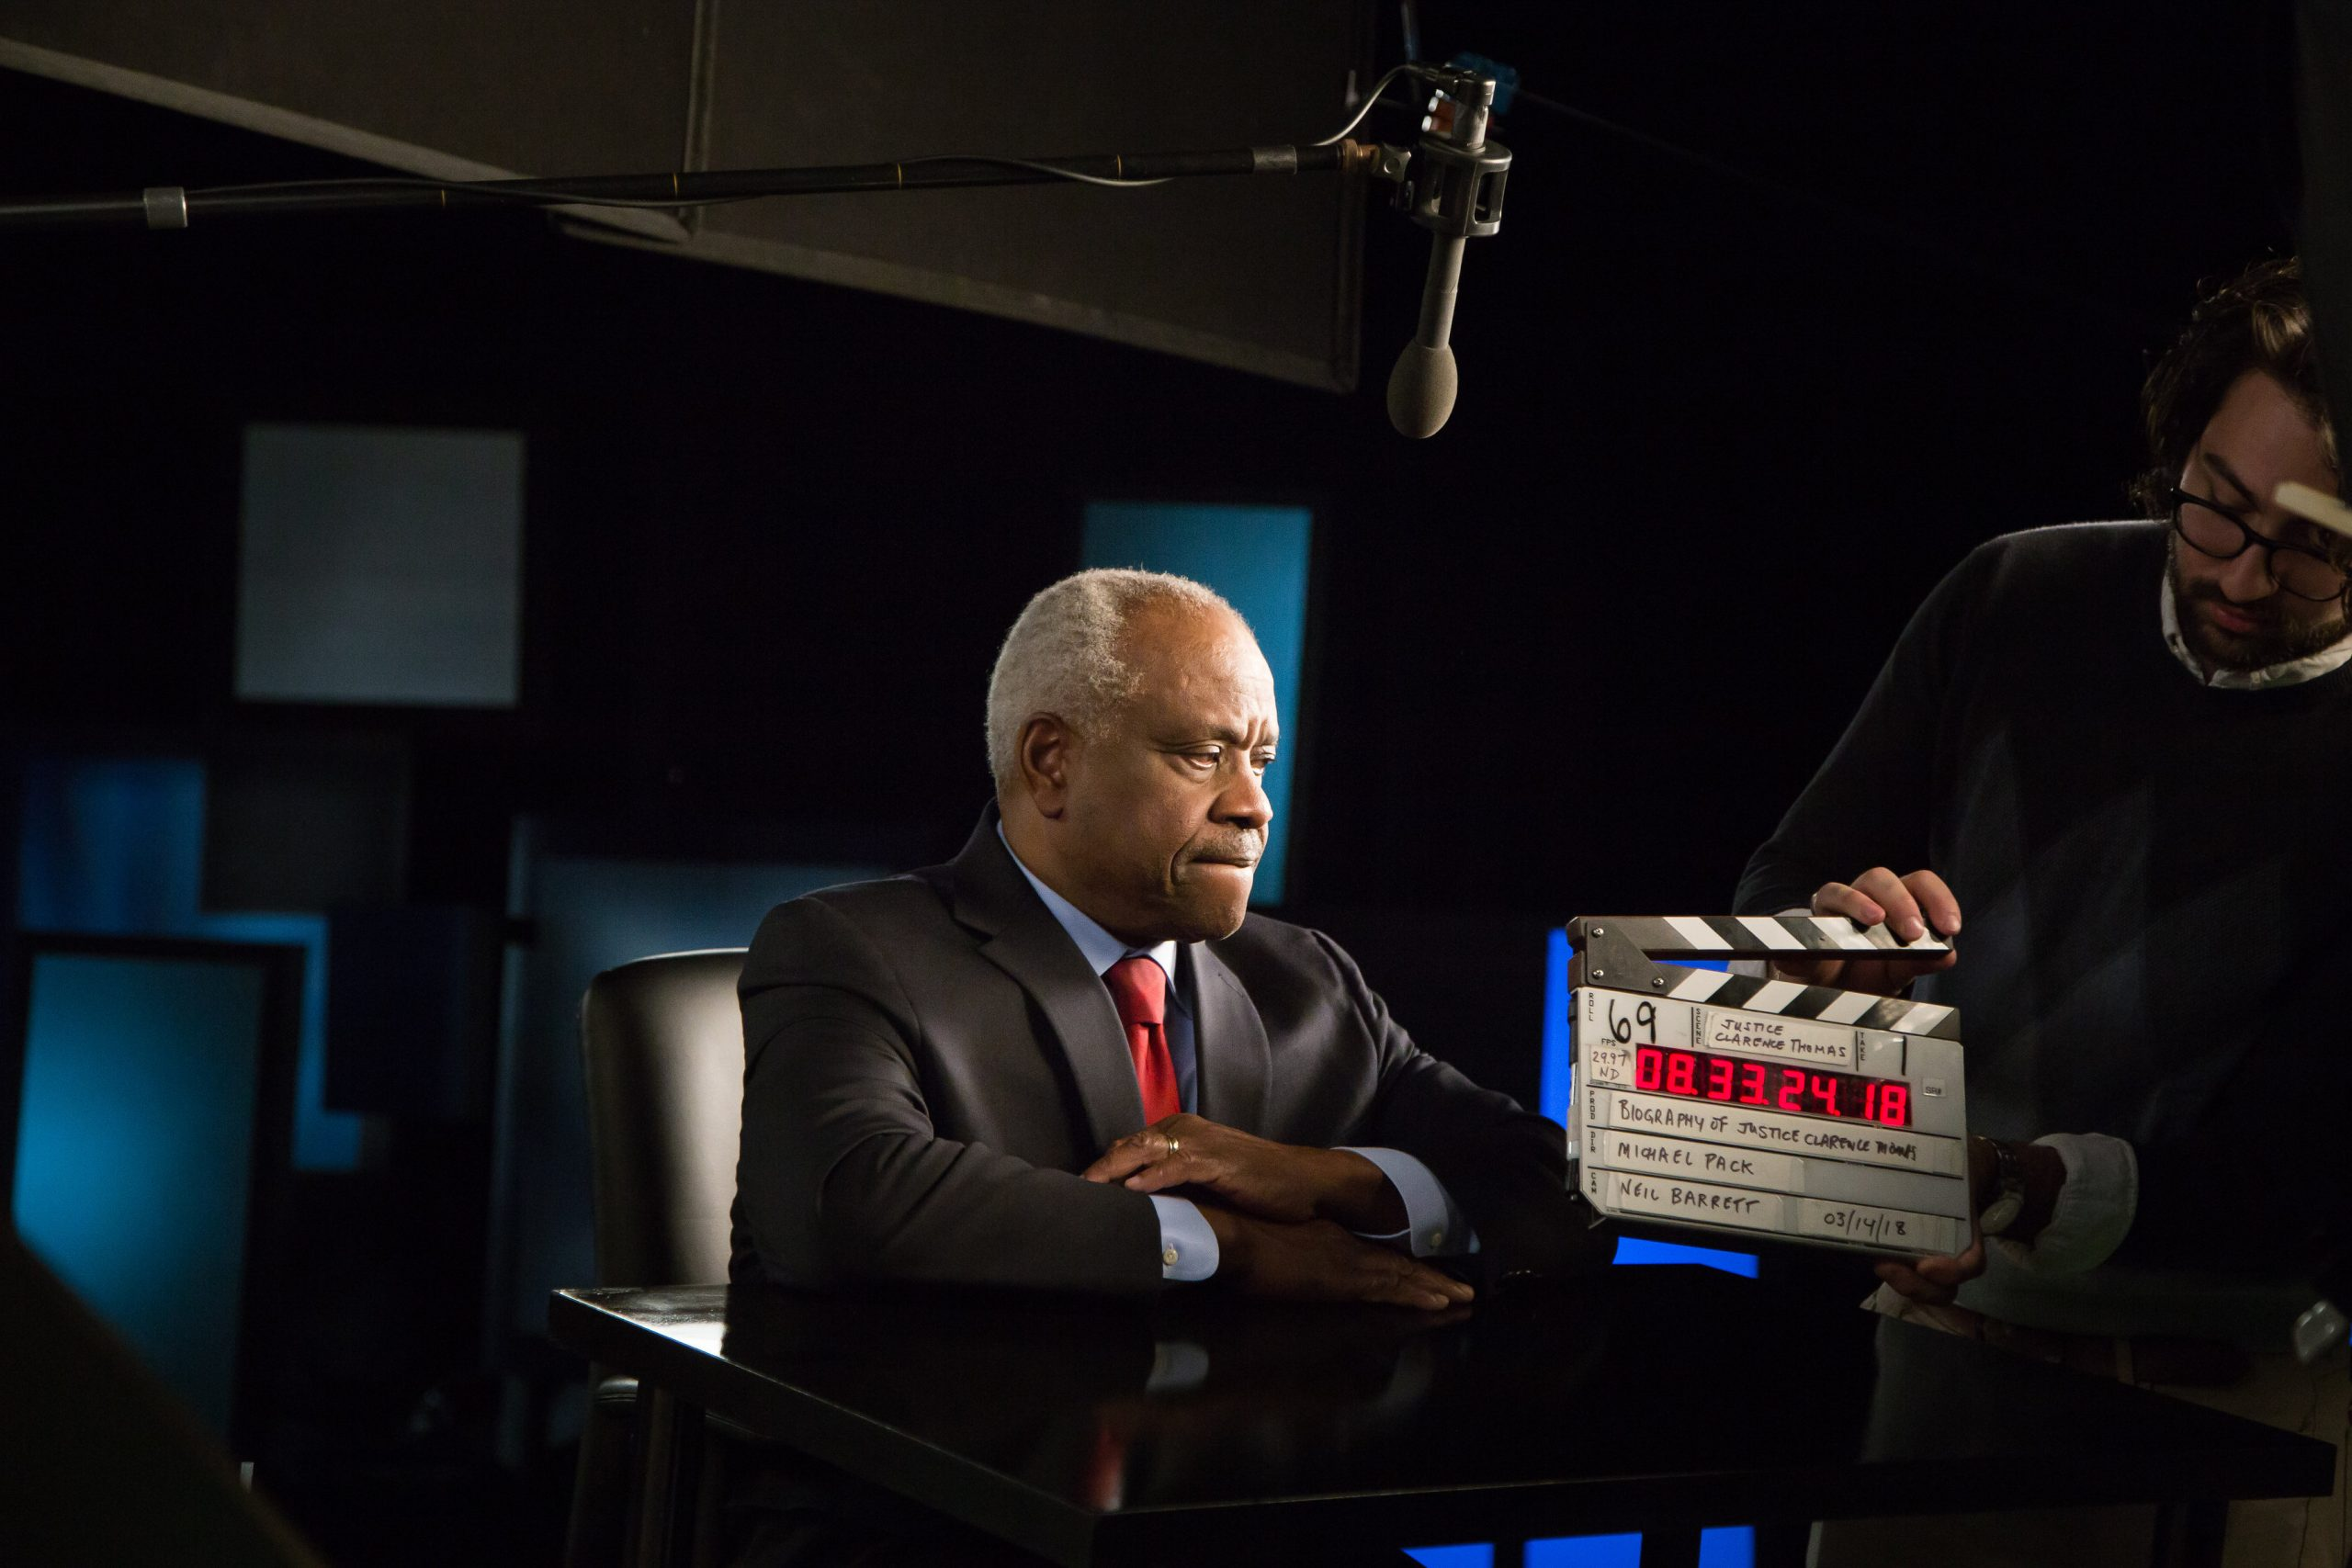 For the first time, Clarence Thomas tells his story on television